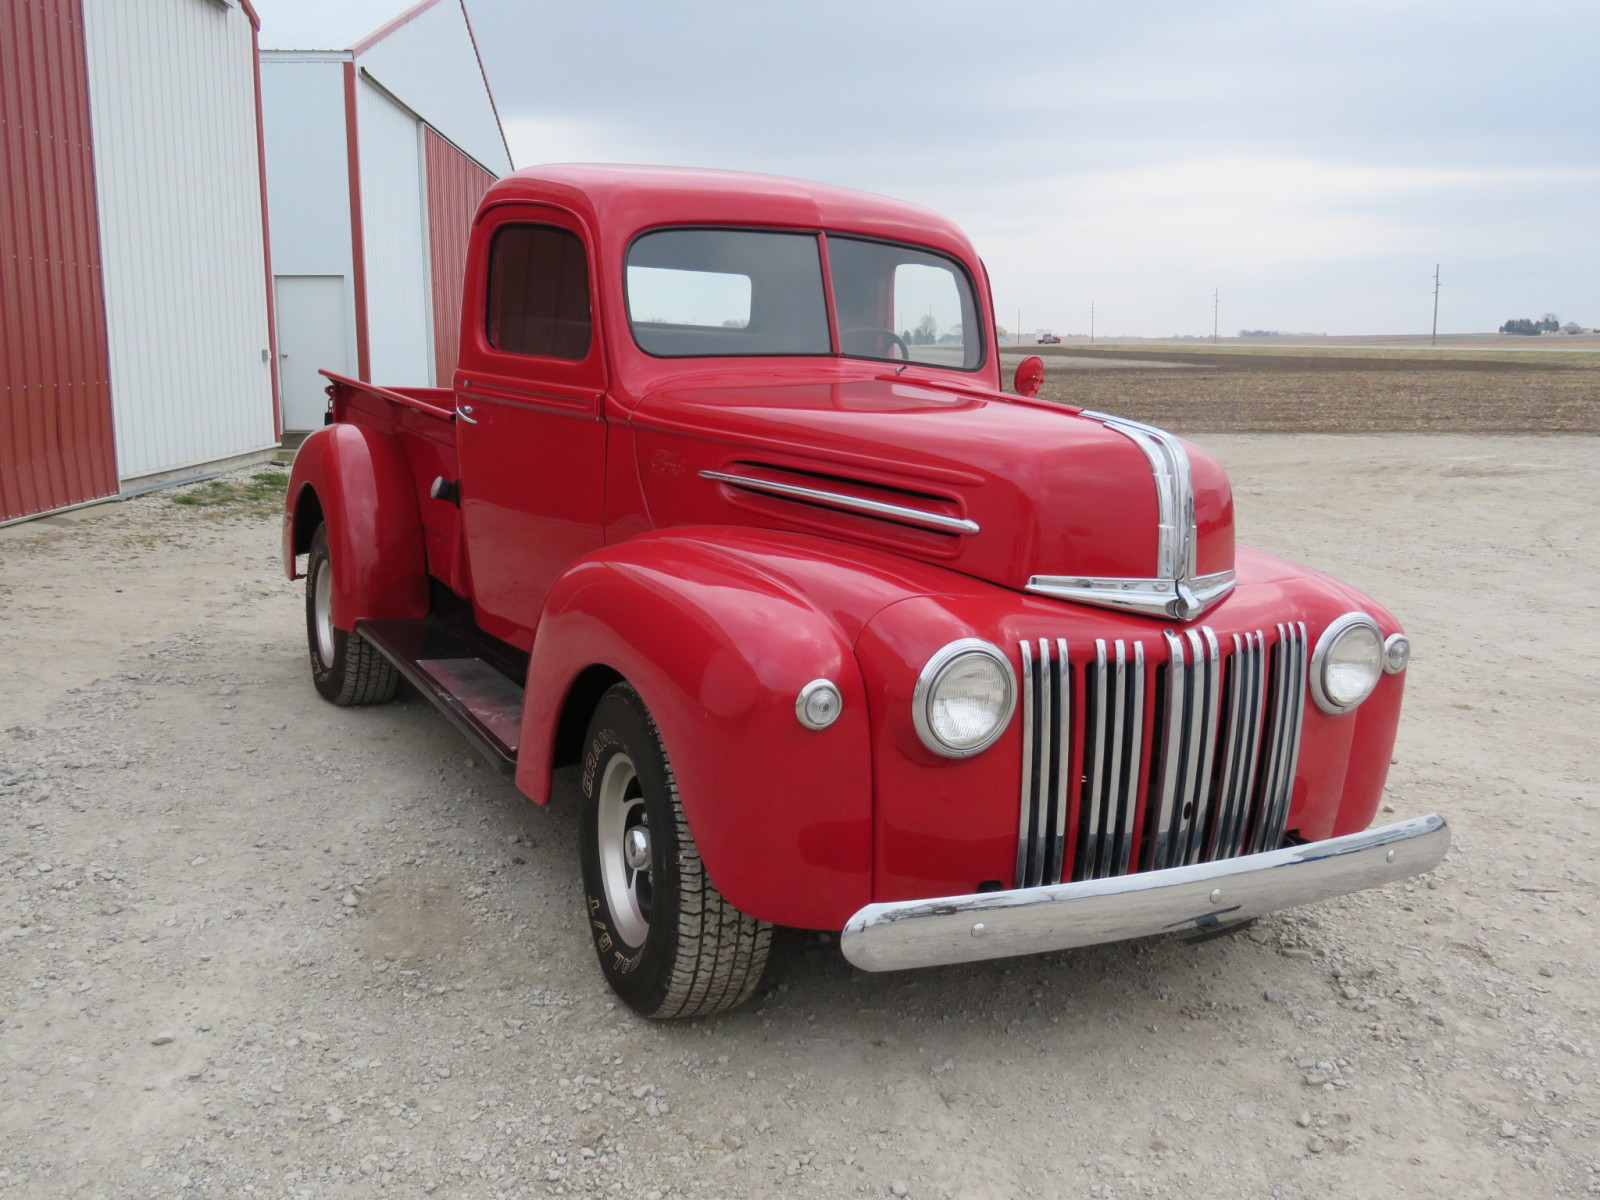 1946 Ford Pickup - Image 3